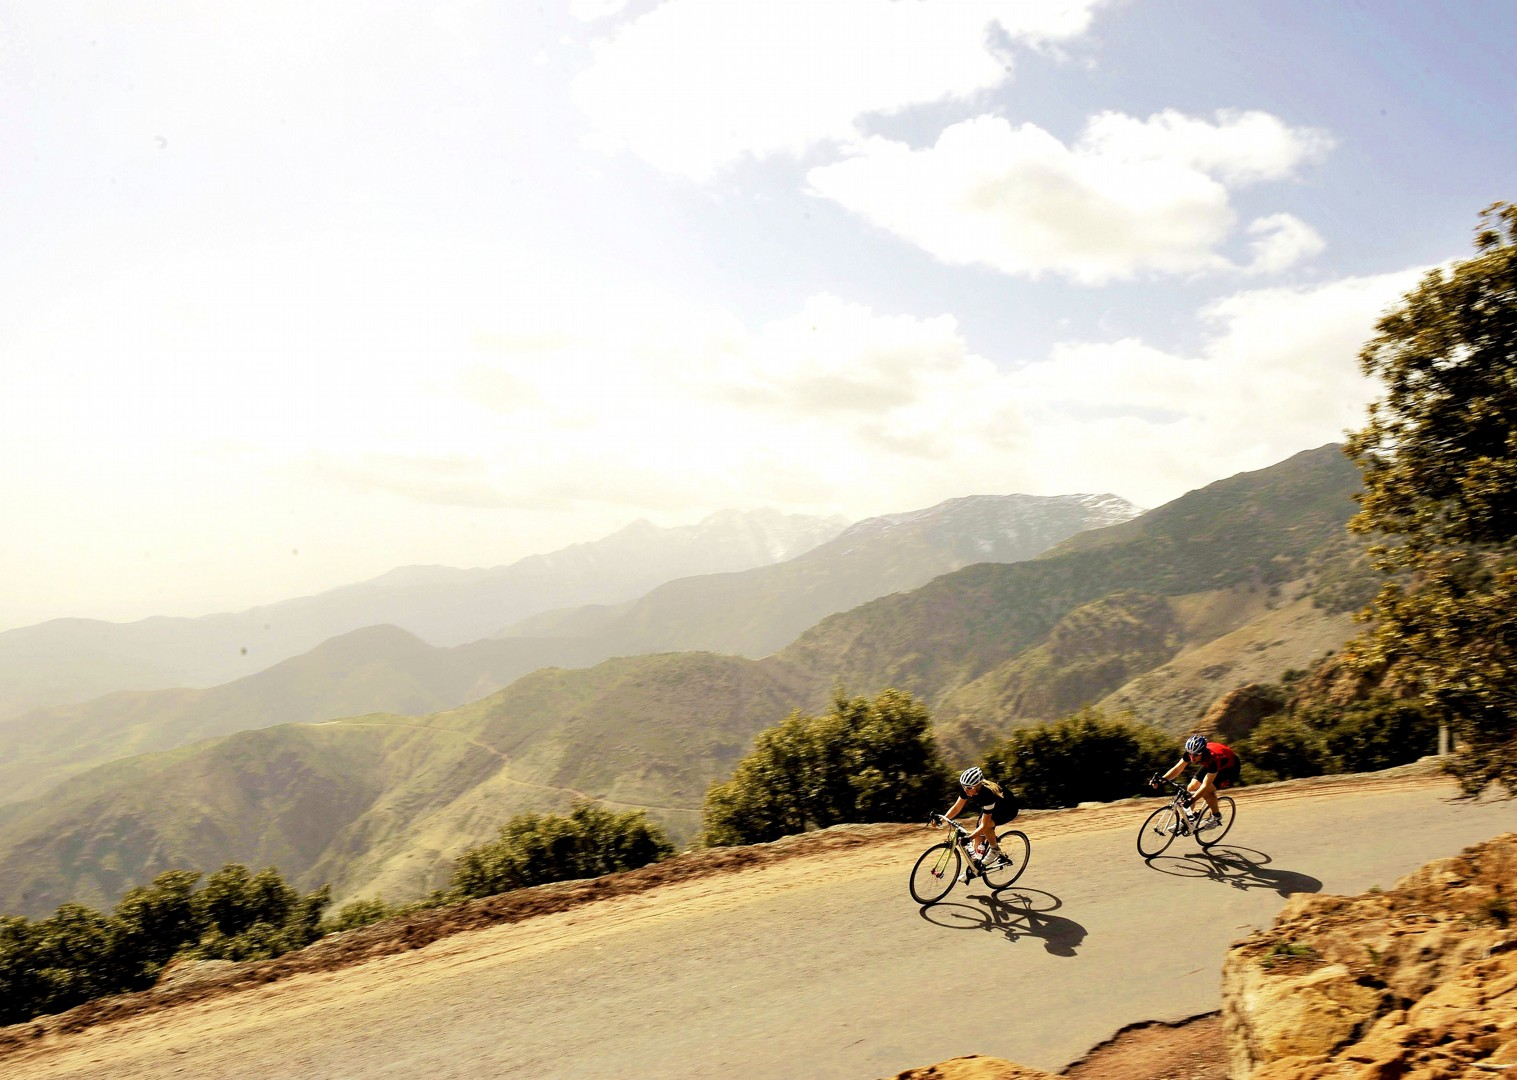 snow-tipped-peaks-mountain-morocco-road-cycling.jpg - Morocco - Road Atlas - Road Cycling